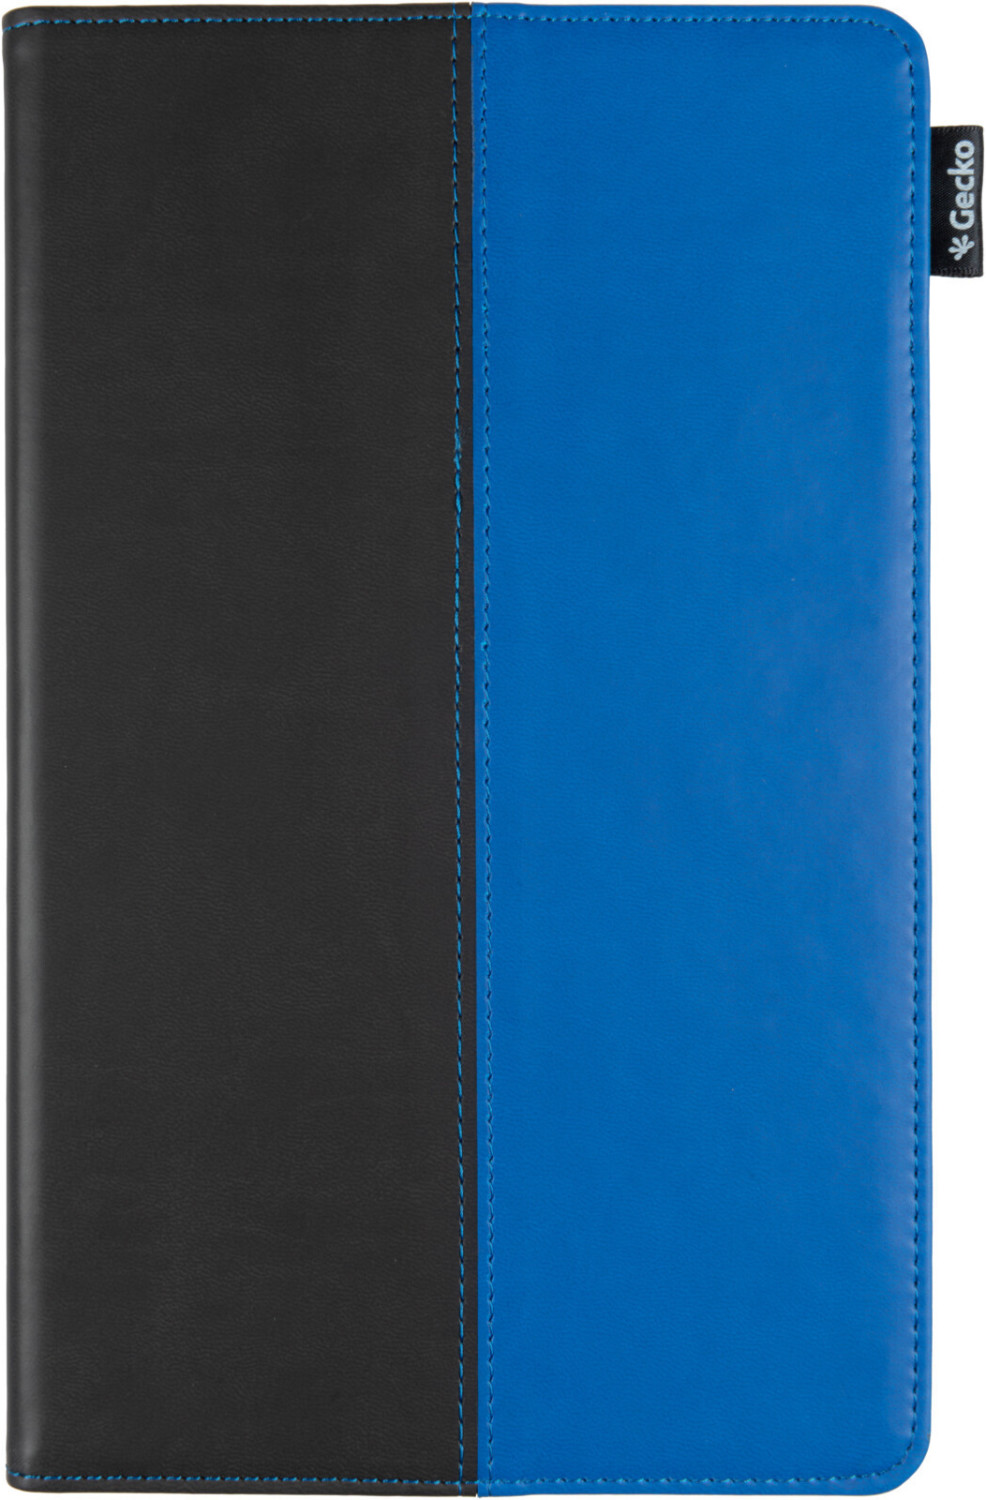 Image of Gecko Covers Easy-Click Galaxy Tab A 10.1 2019 Black/Blue